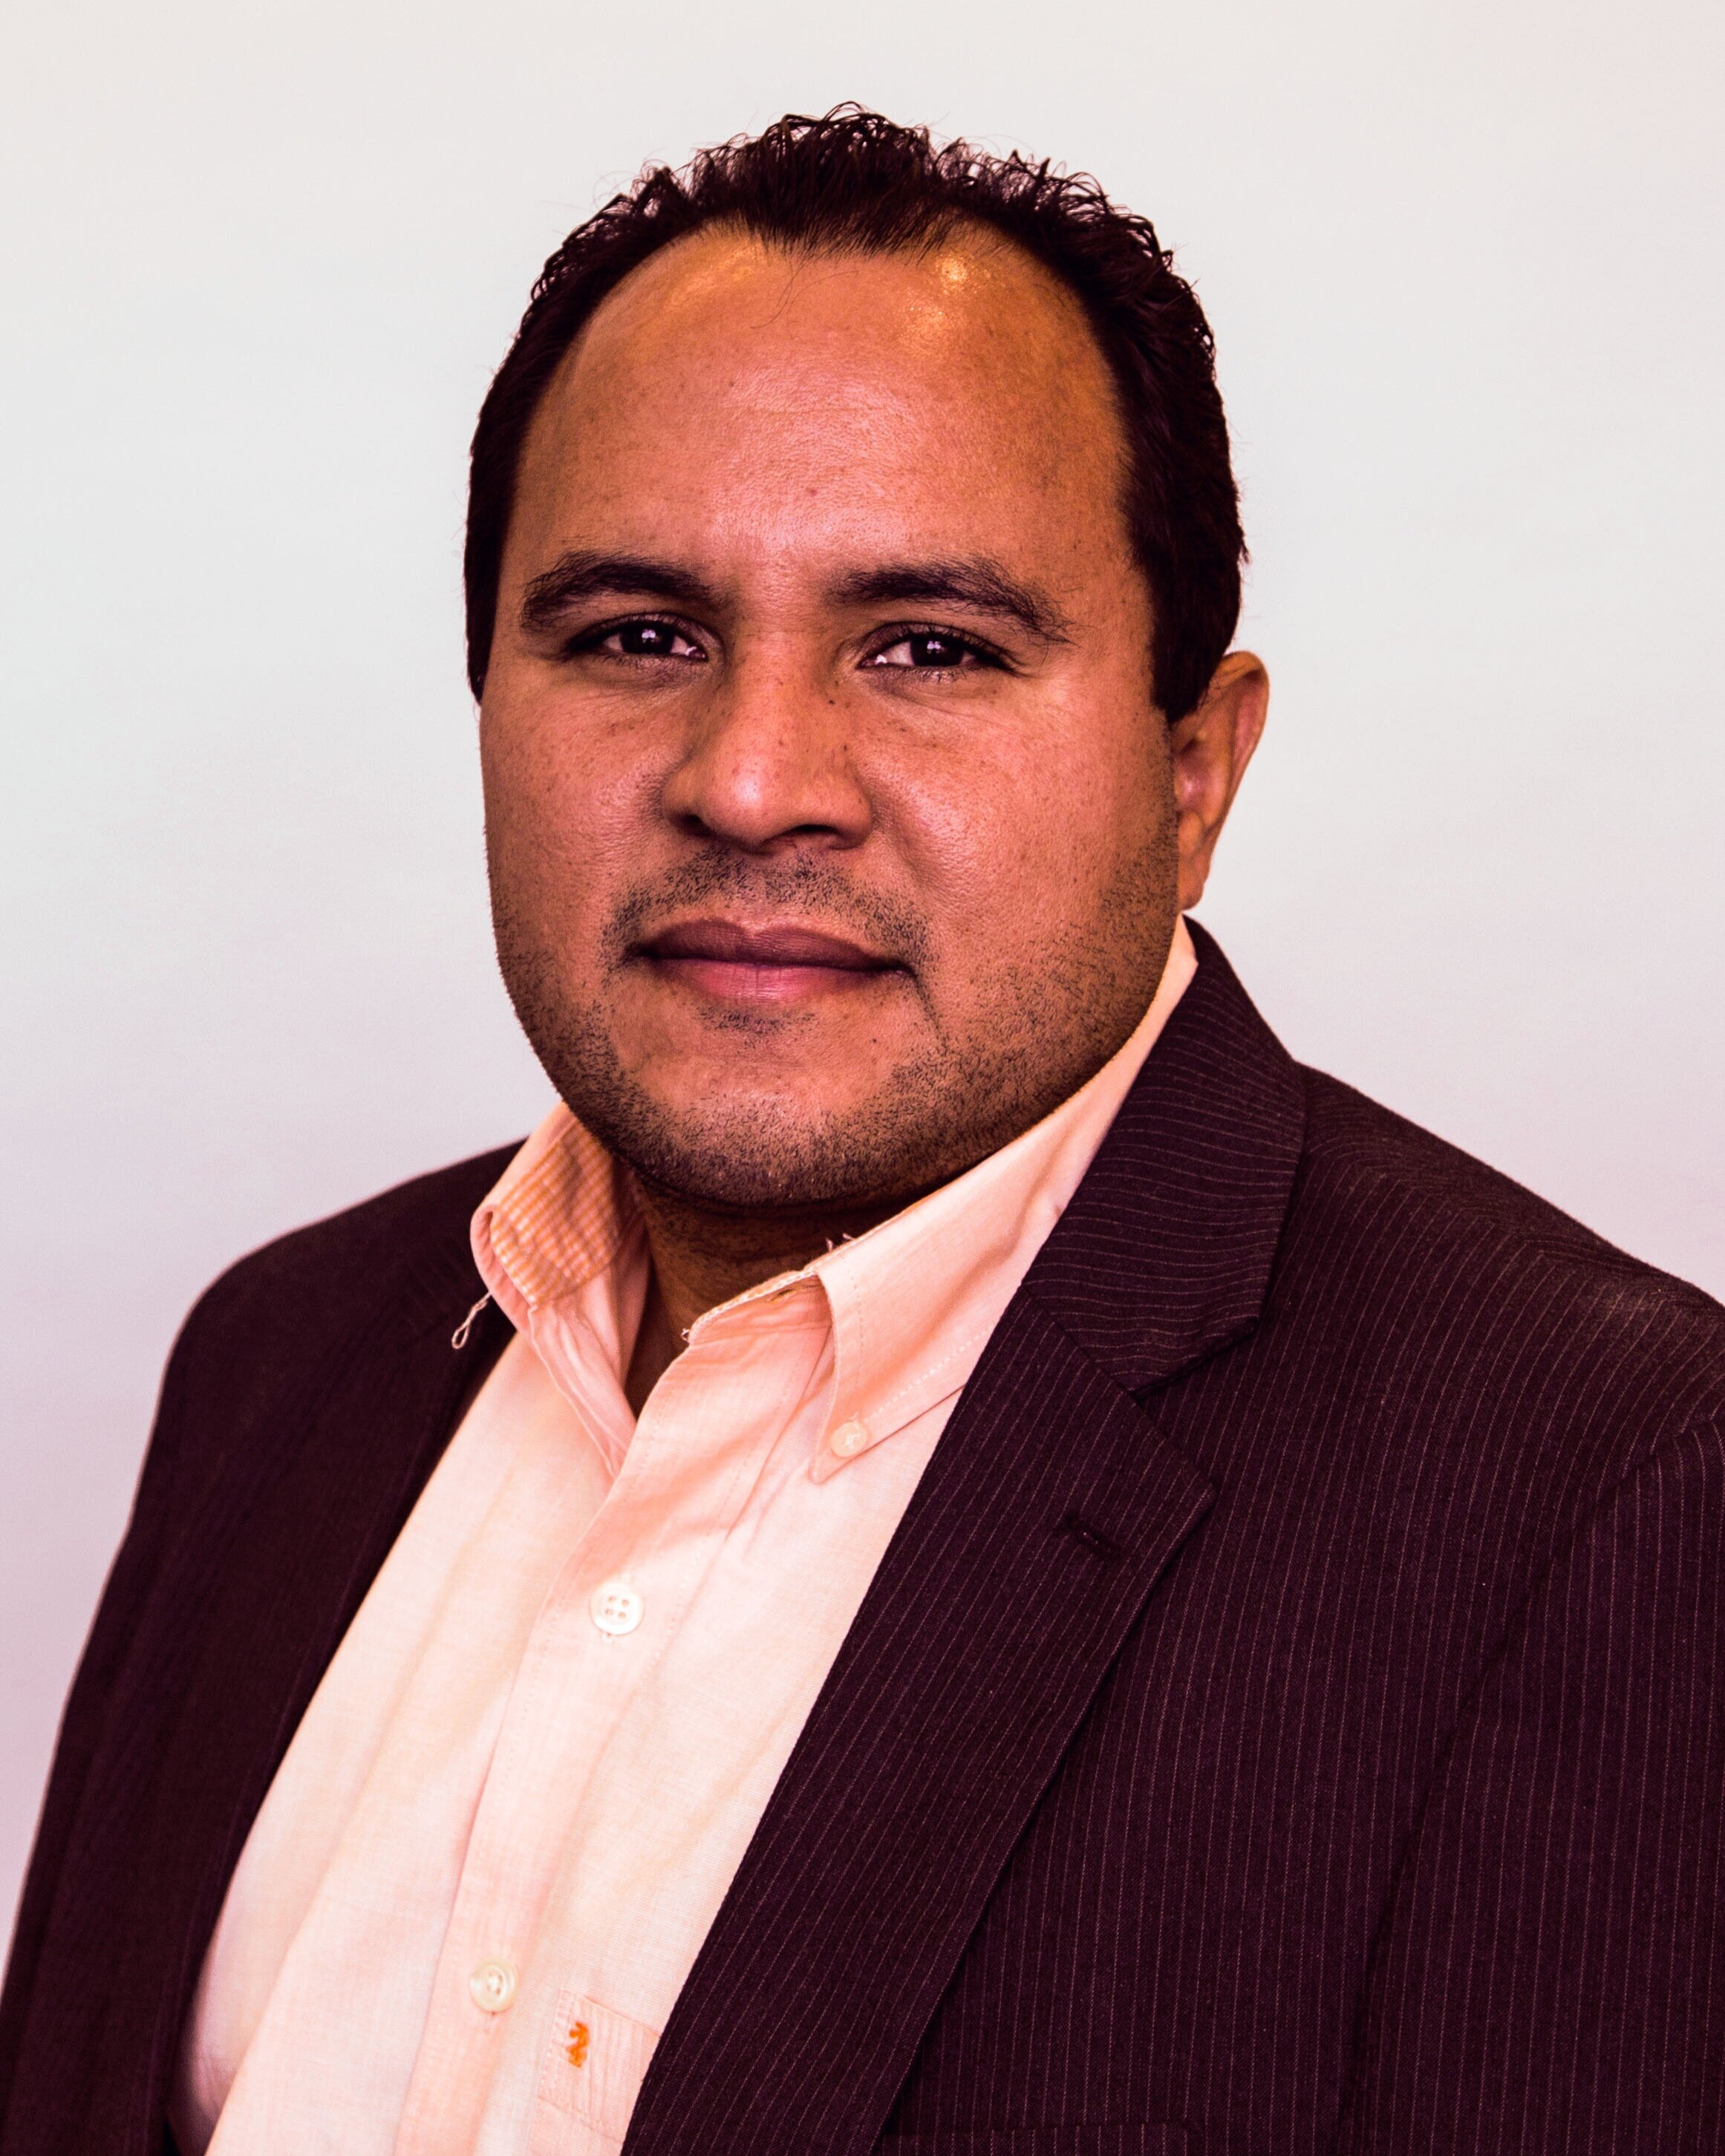 OUTSTANDING TECHNICAL ACHIEVEMENTPedro A.Capó-Lugo, Ph.D. - Senior Systems Engineer IIRaytheon Missile SystemsRaytheon Company